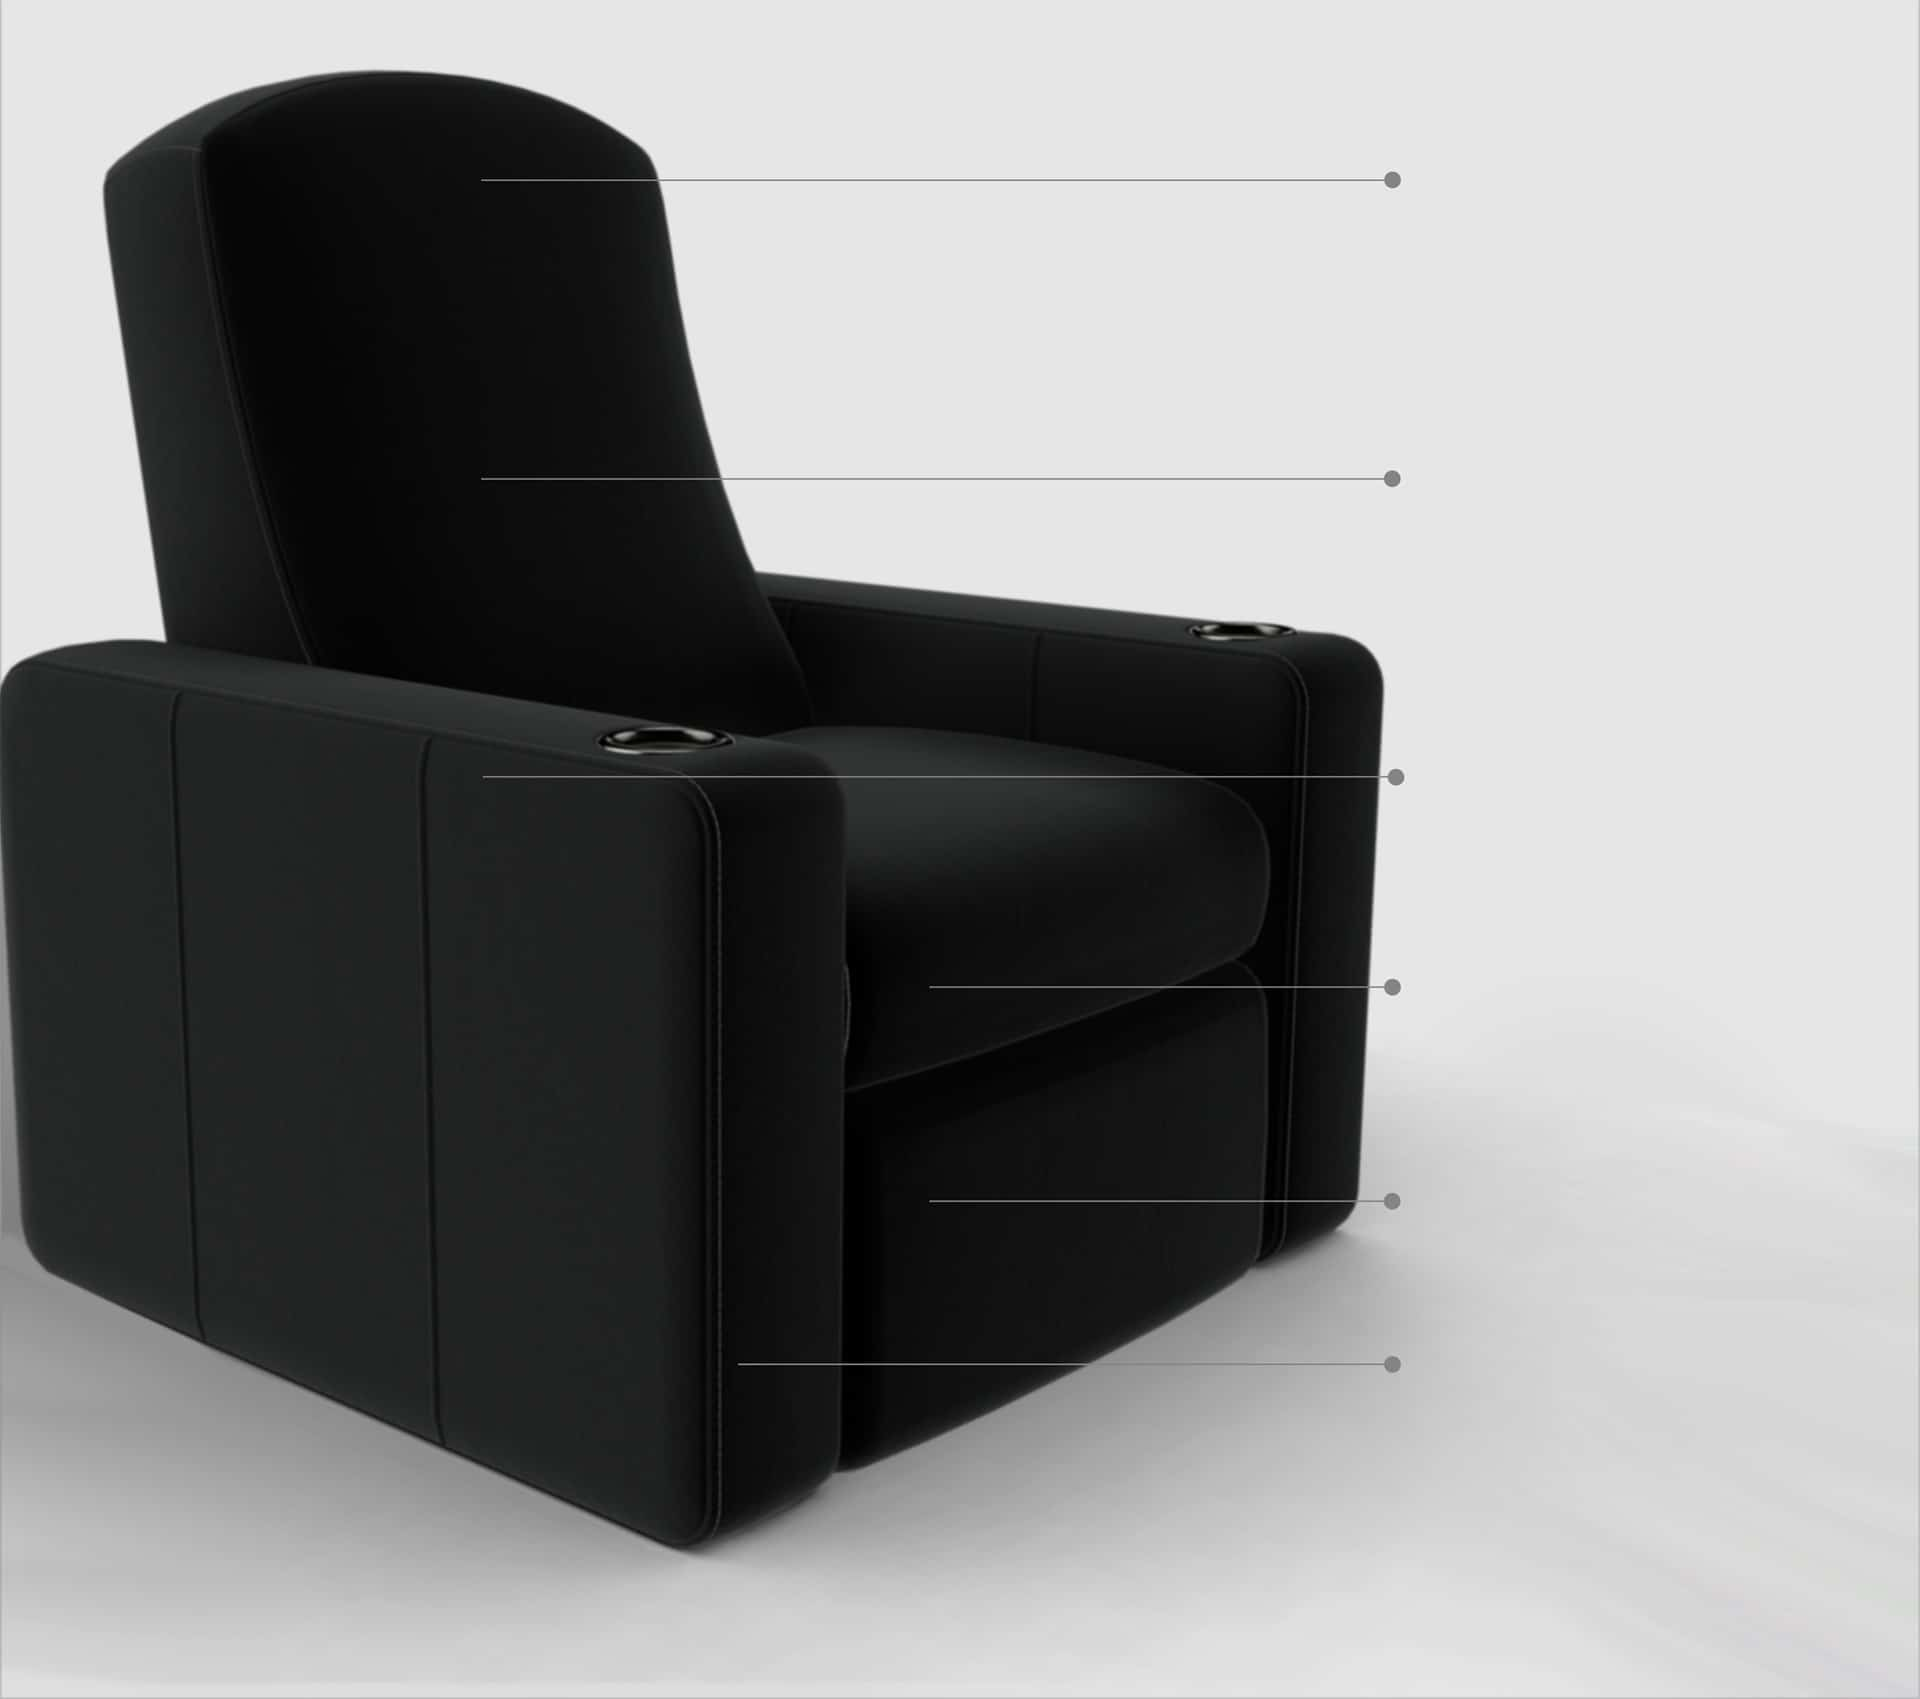 Home cinema seating point image